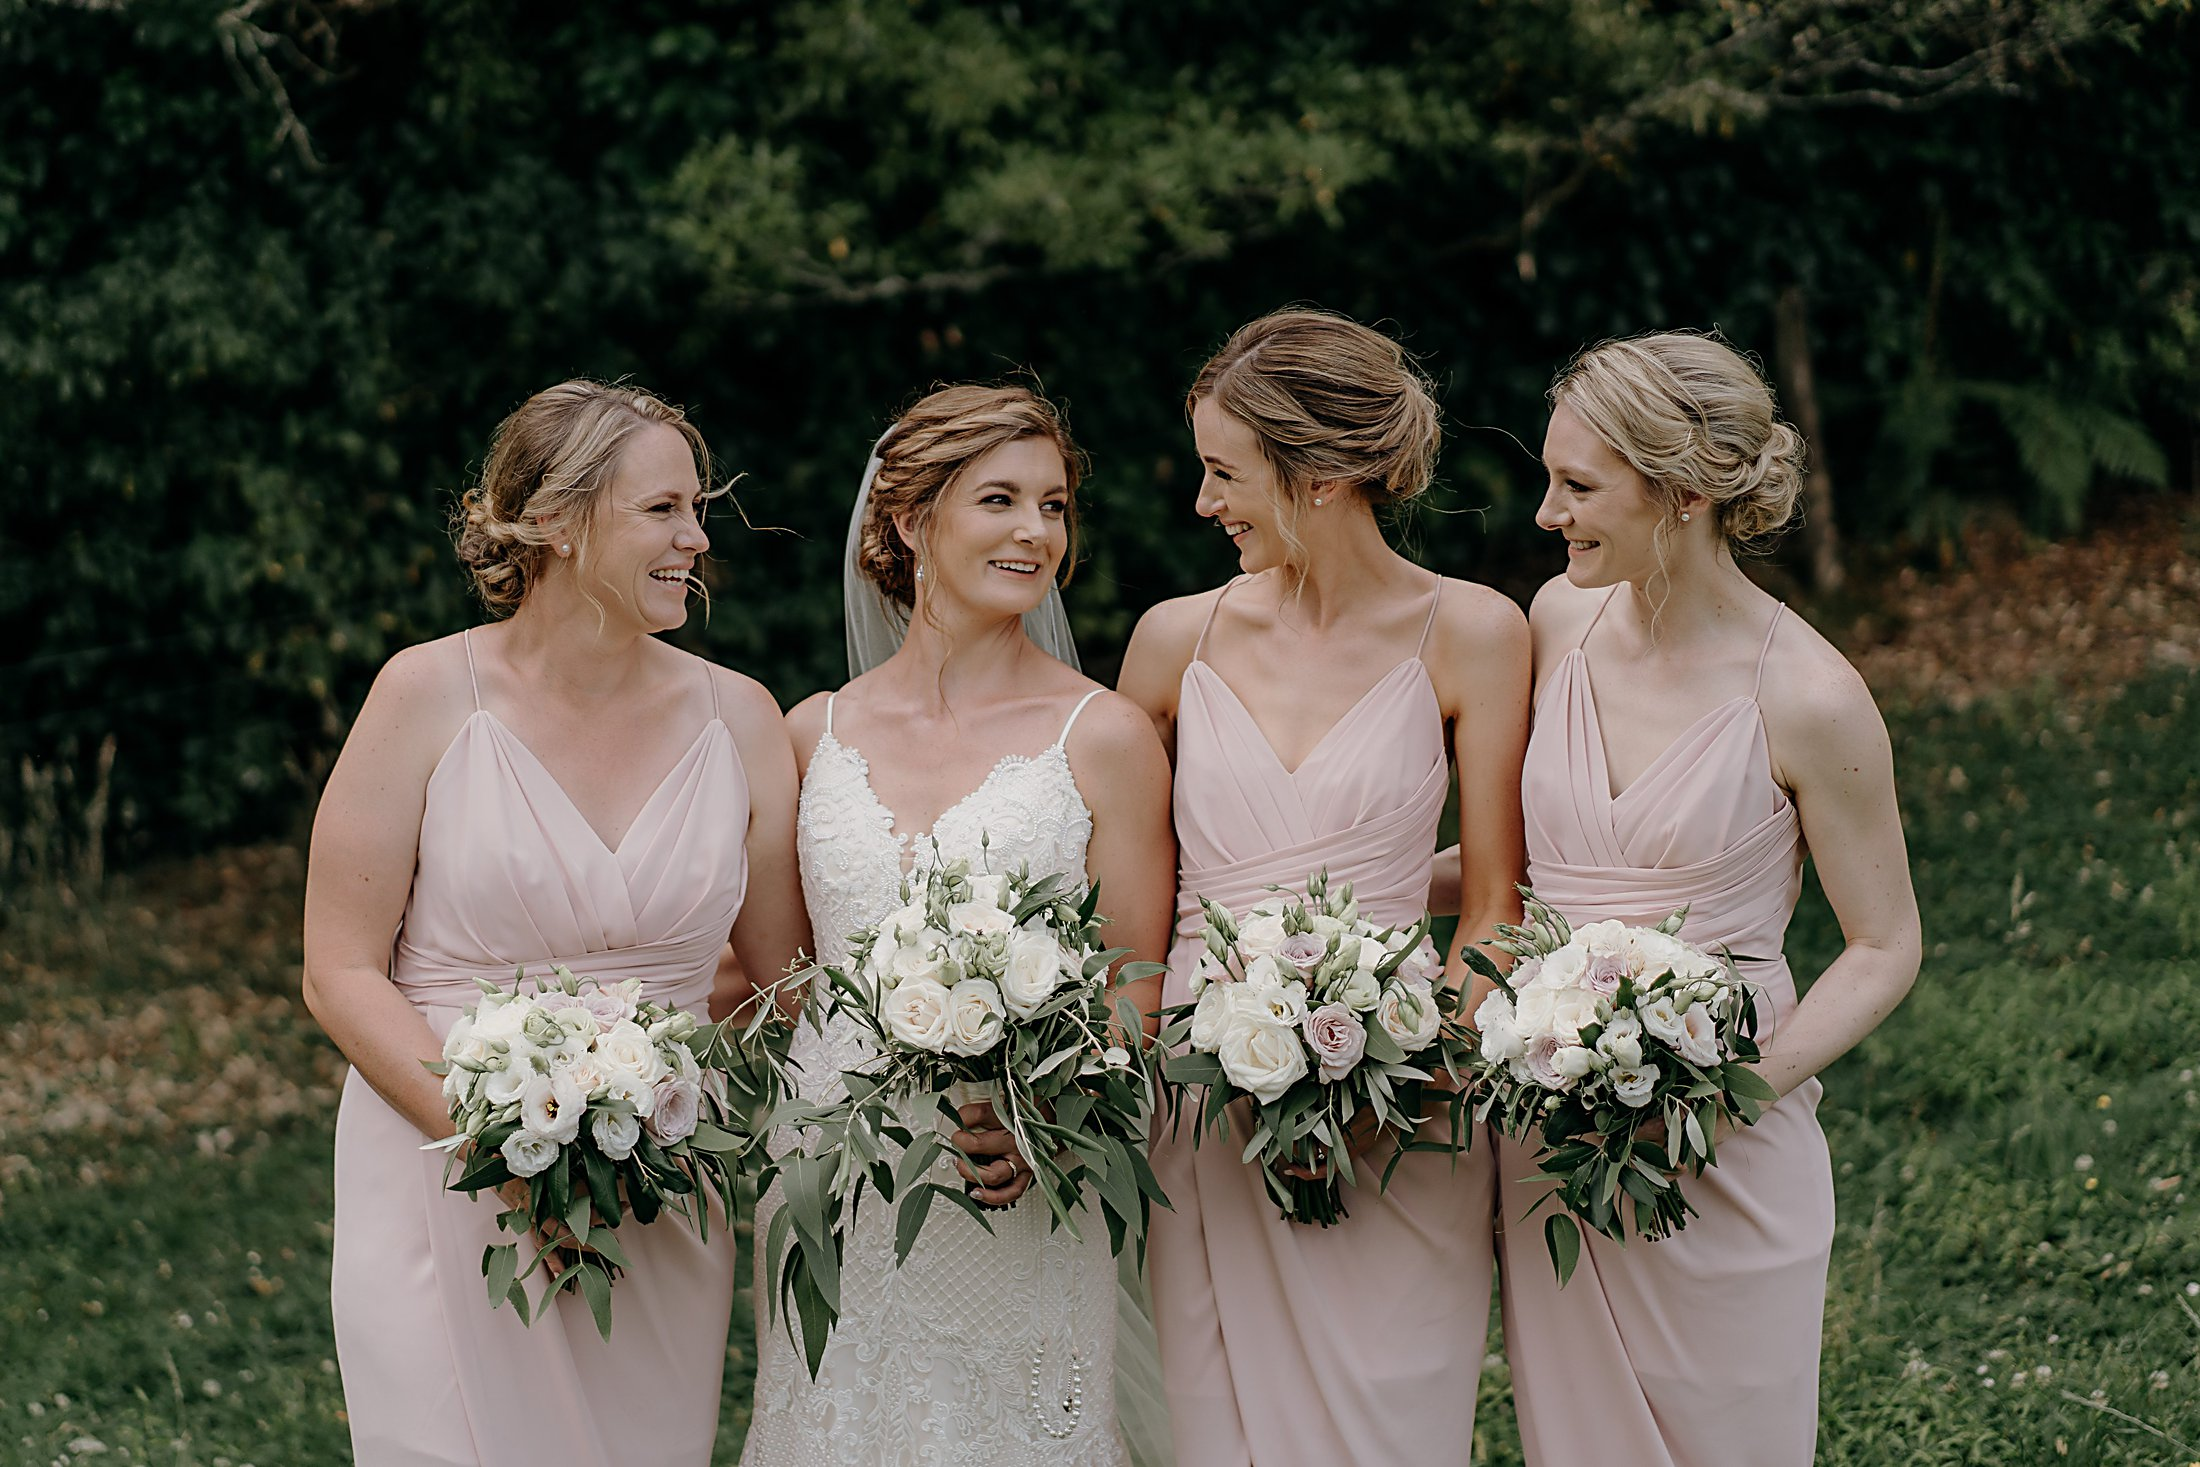 Blush Pink Bridesmaids with white and blush rose bouquets